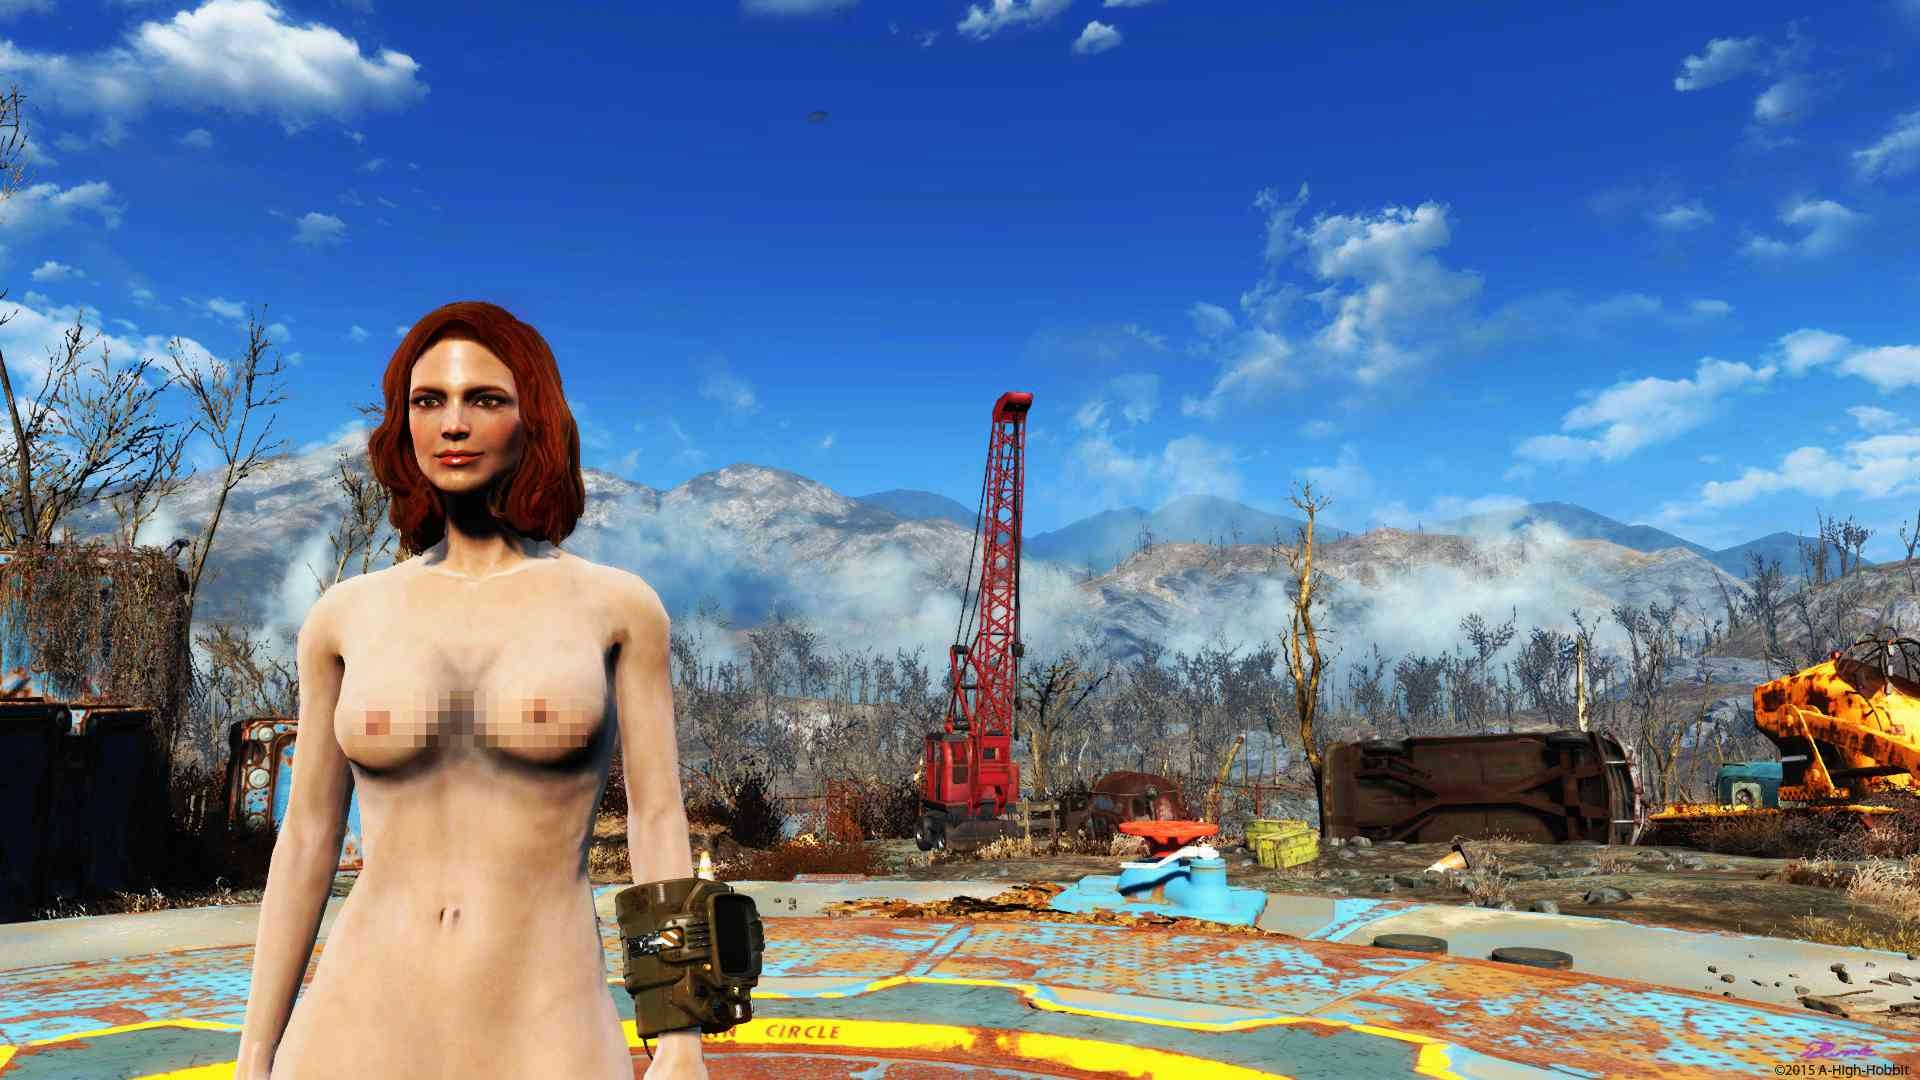 Piper fallout 4 nude mod sex galleries